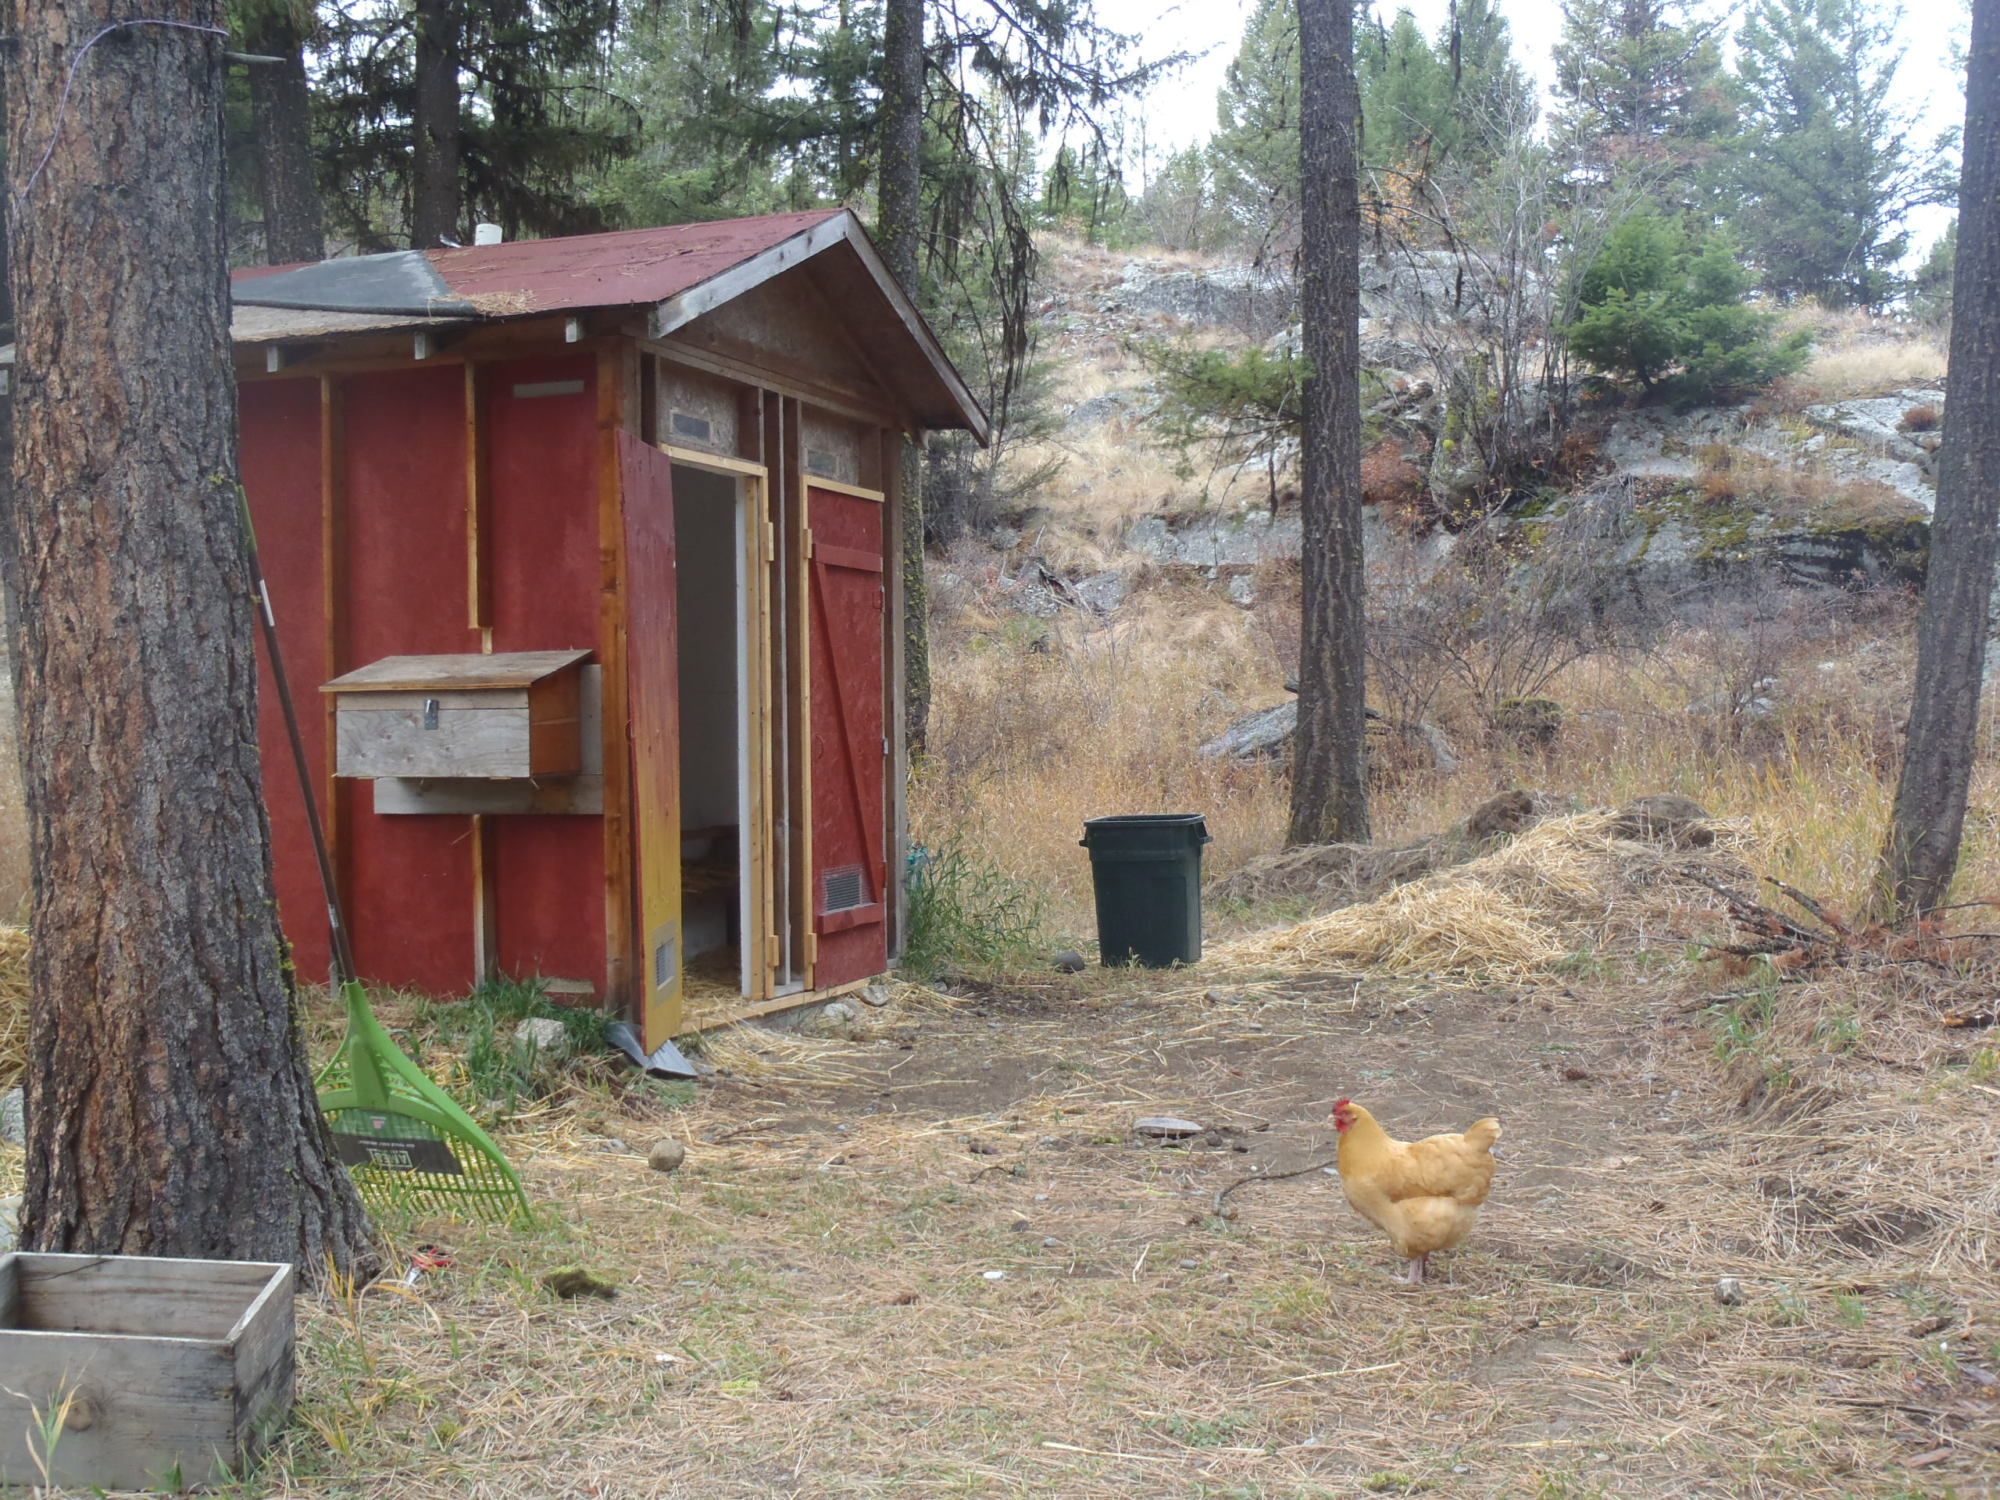 do you let your chickens free range when there is snow on the